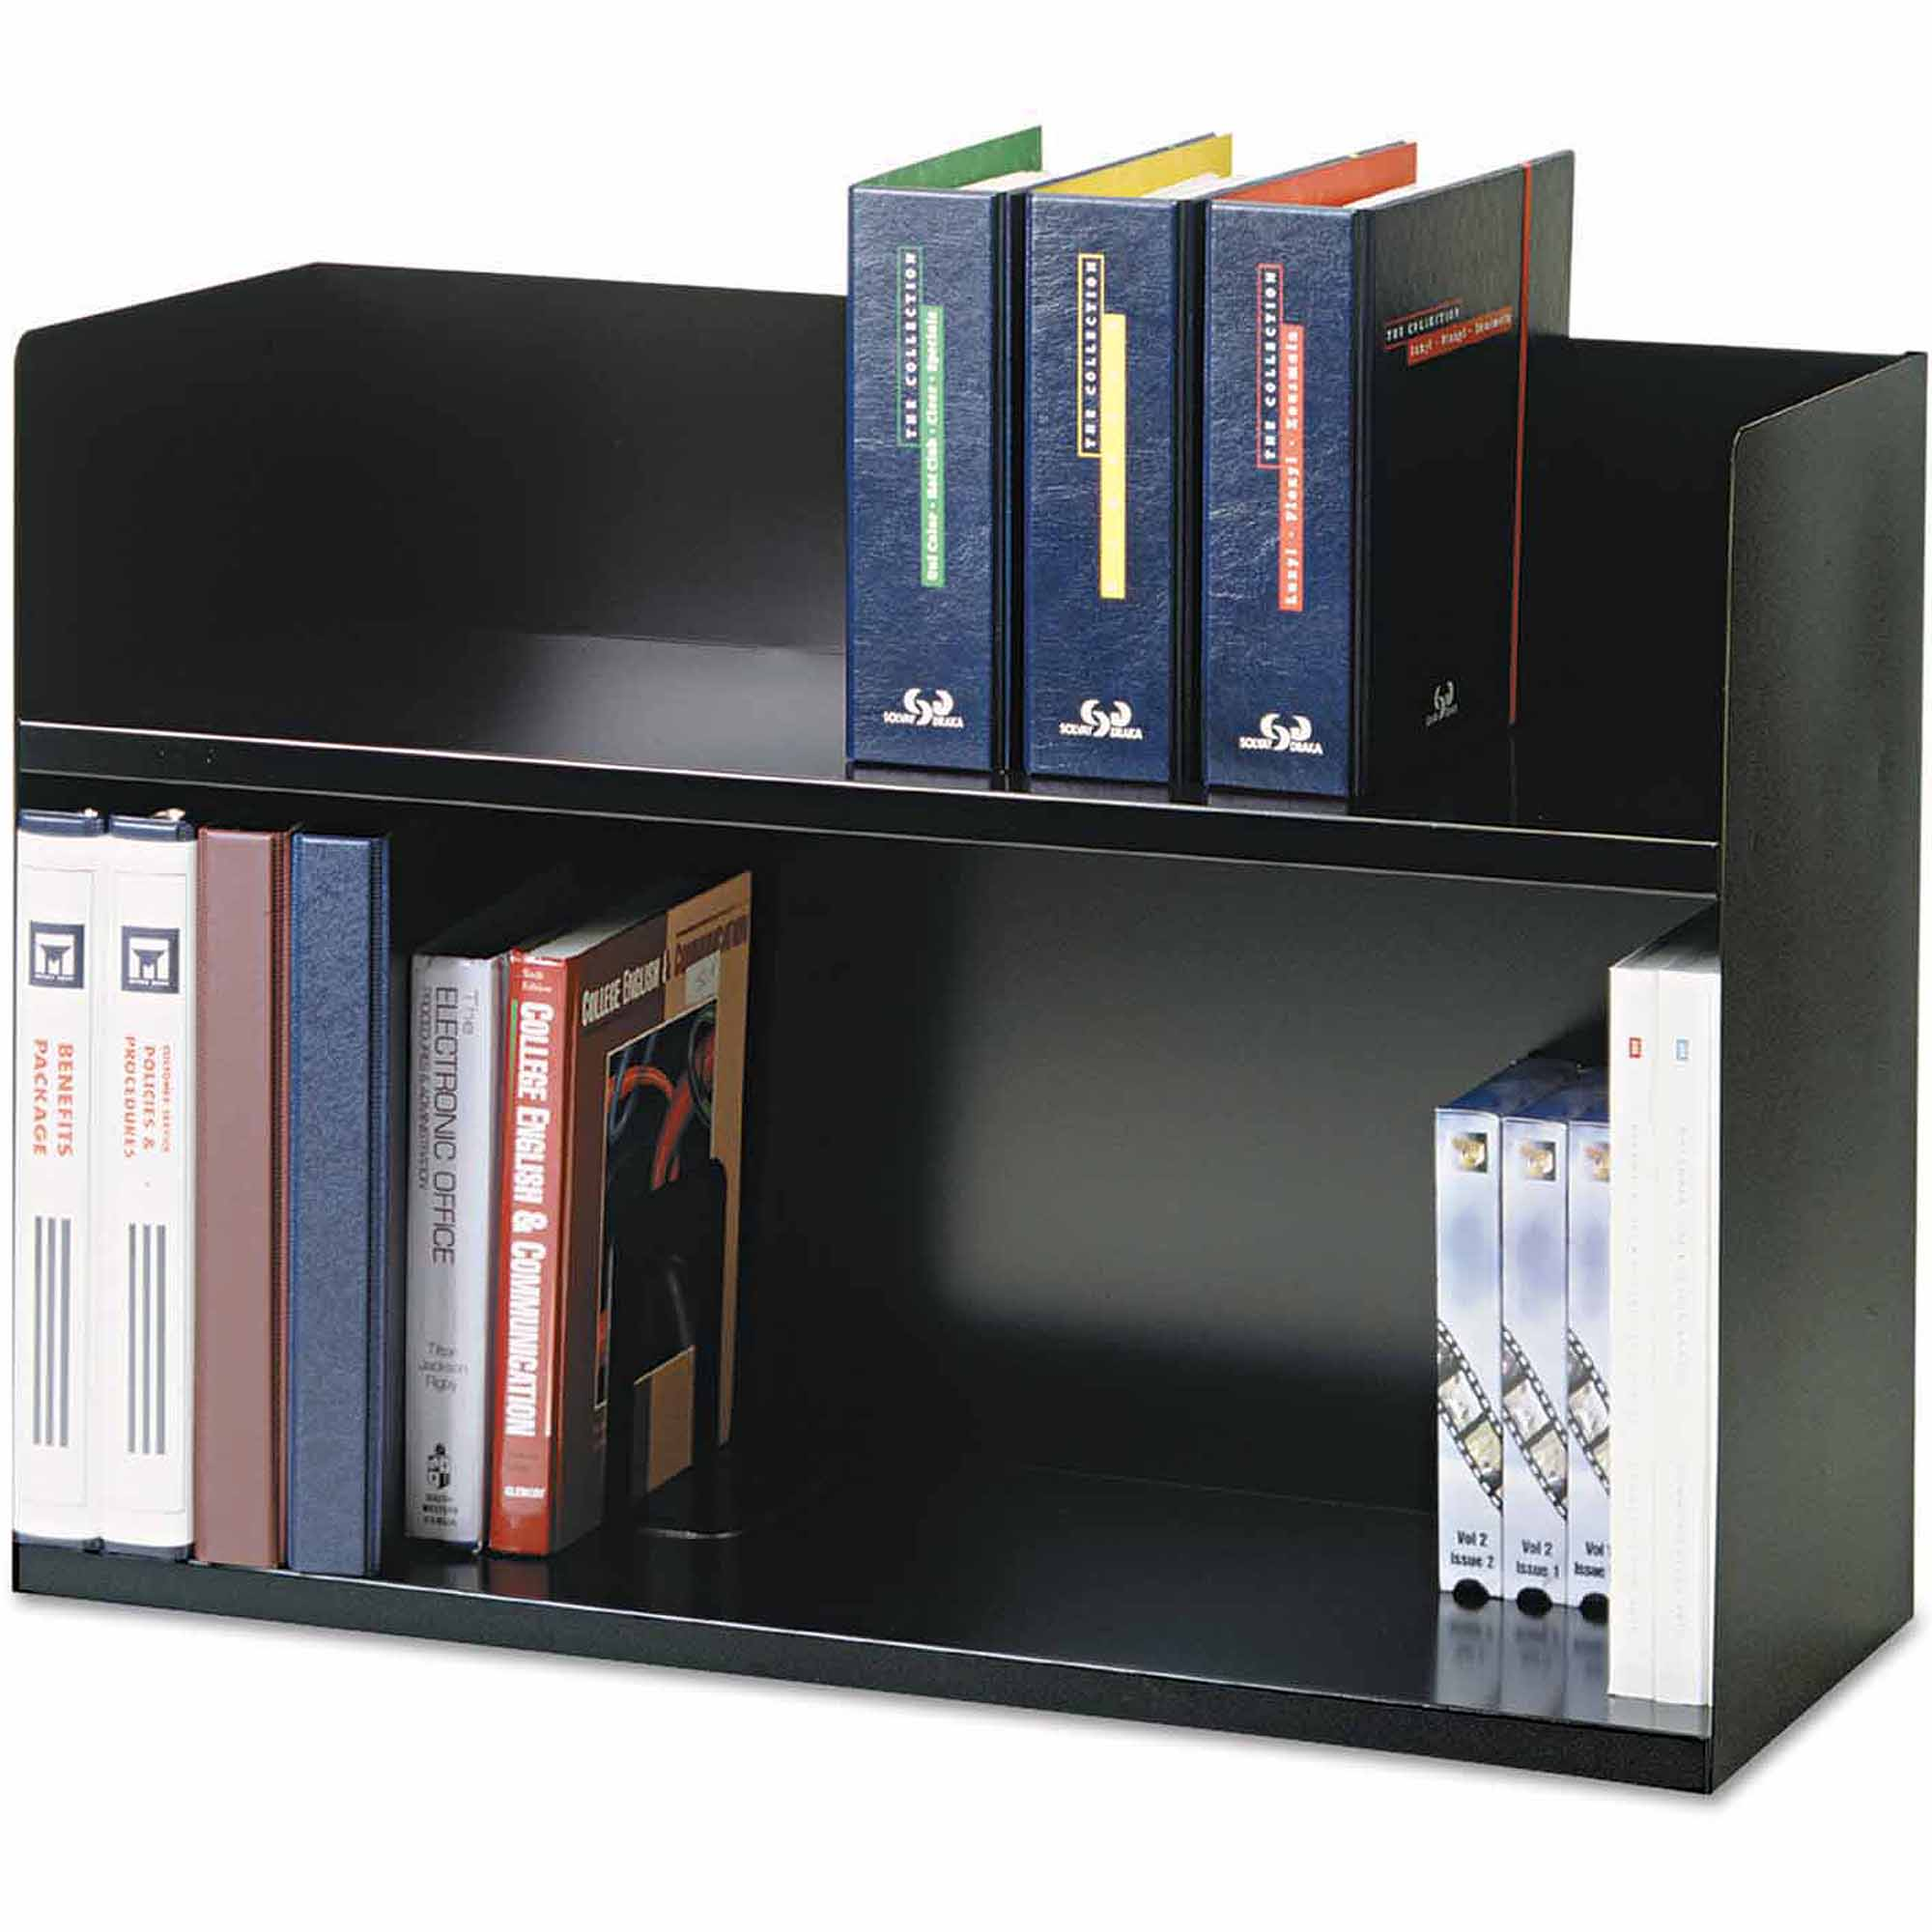 "SteelMaster 2-Tier Book Rack, Steel, 29-1/8"" x 10-3/8"" x 20"", Black"